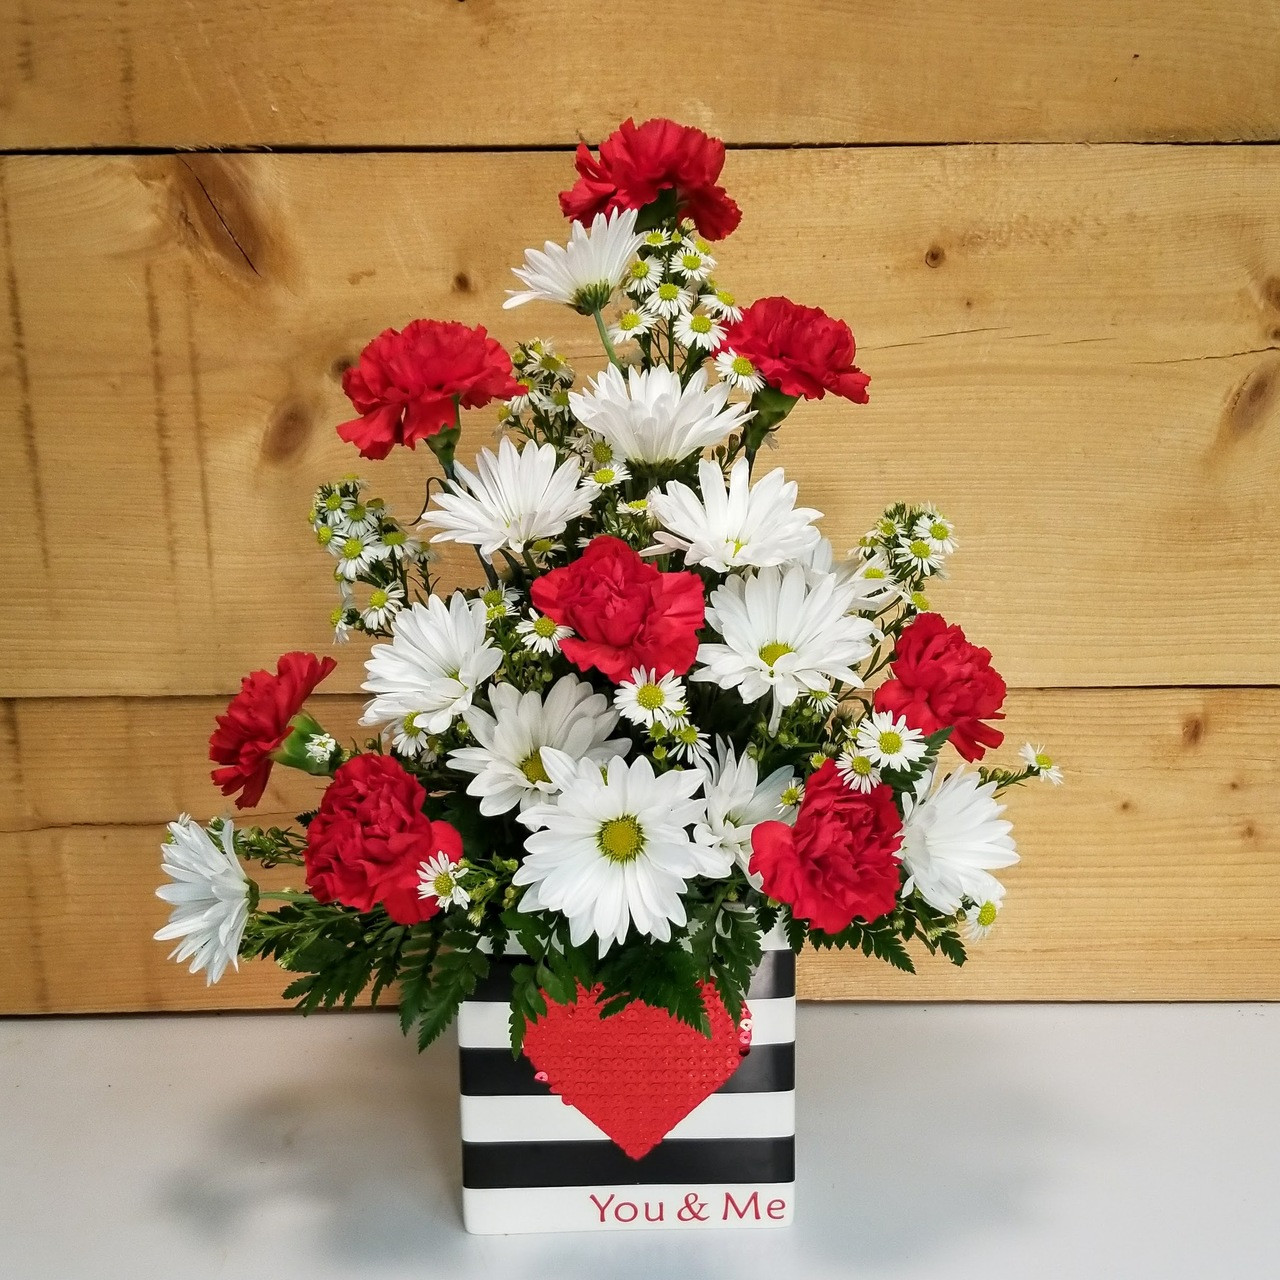 You & Me Bouquet (SCF17SD01) Sweetest Day flowers and gifts from Savilles Country Florist